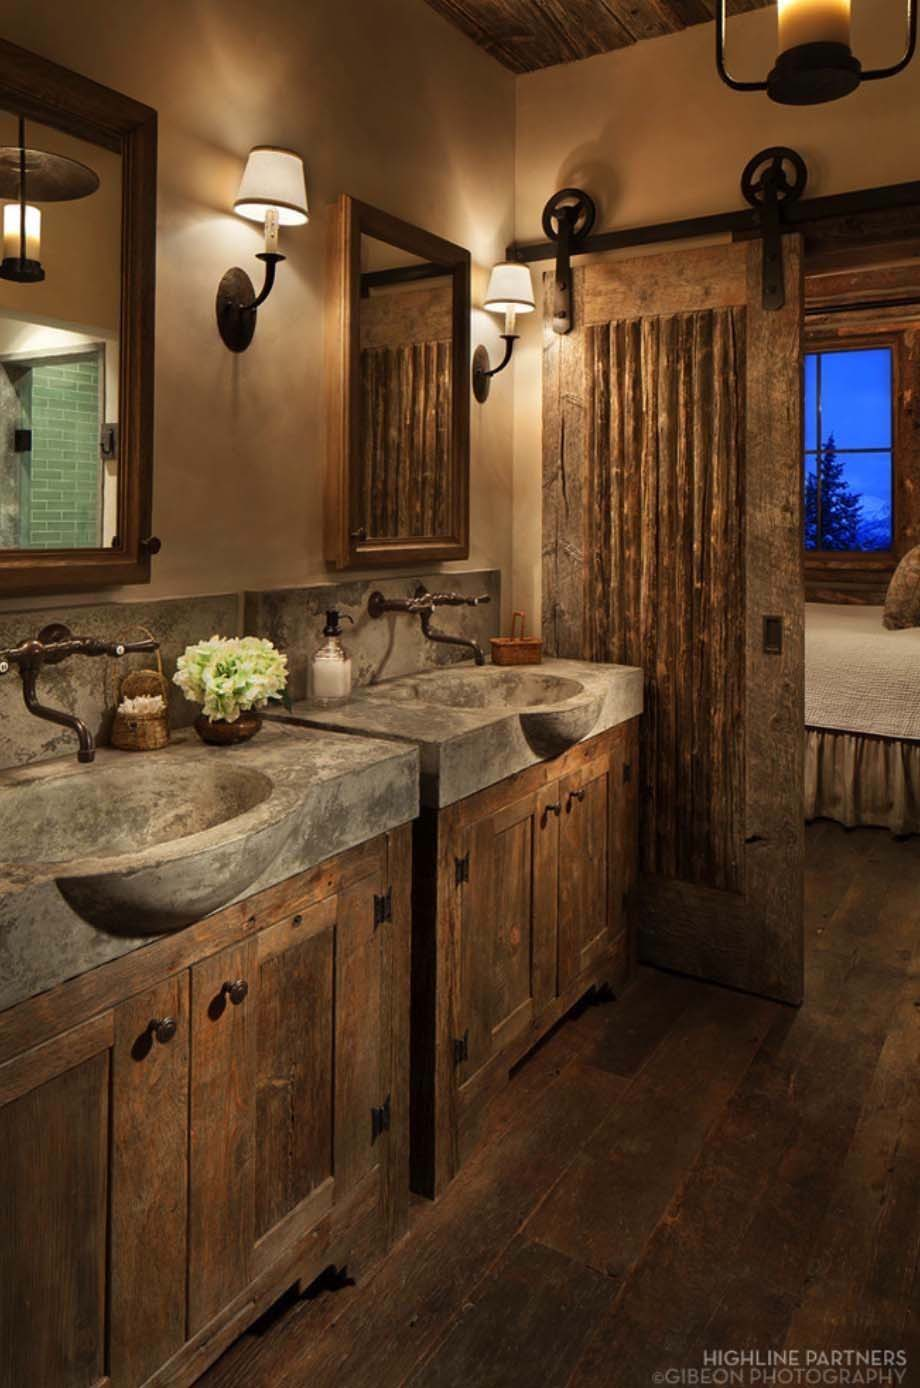 Modern Rustic Bathroom Décor with Concrete Sinks and Barn Door rustic bathroom decor ideas